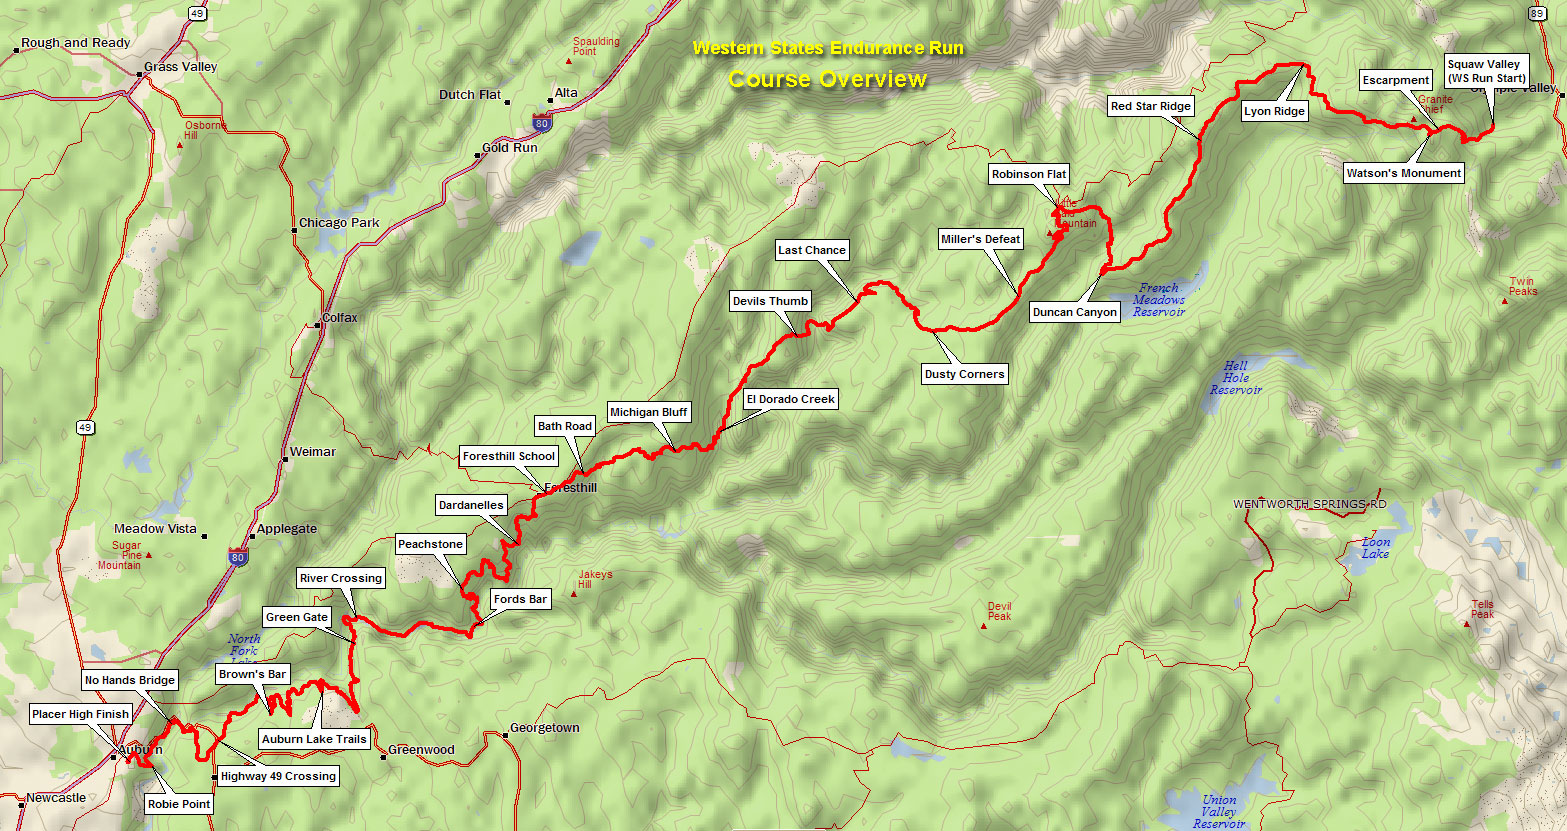 Course Overview with Aid Stations